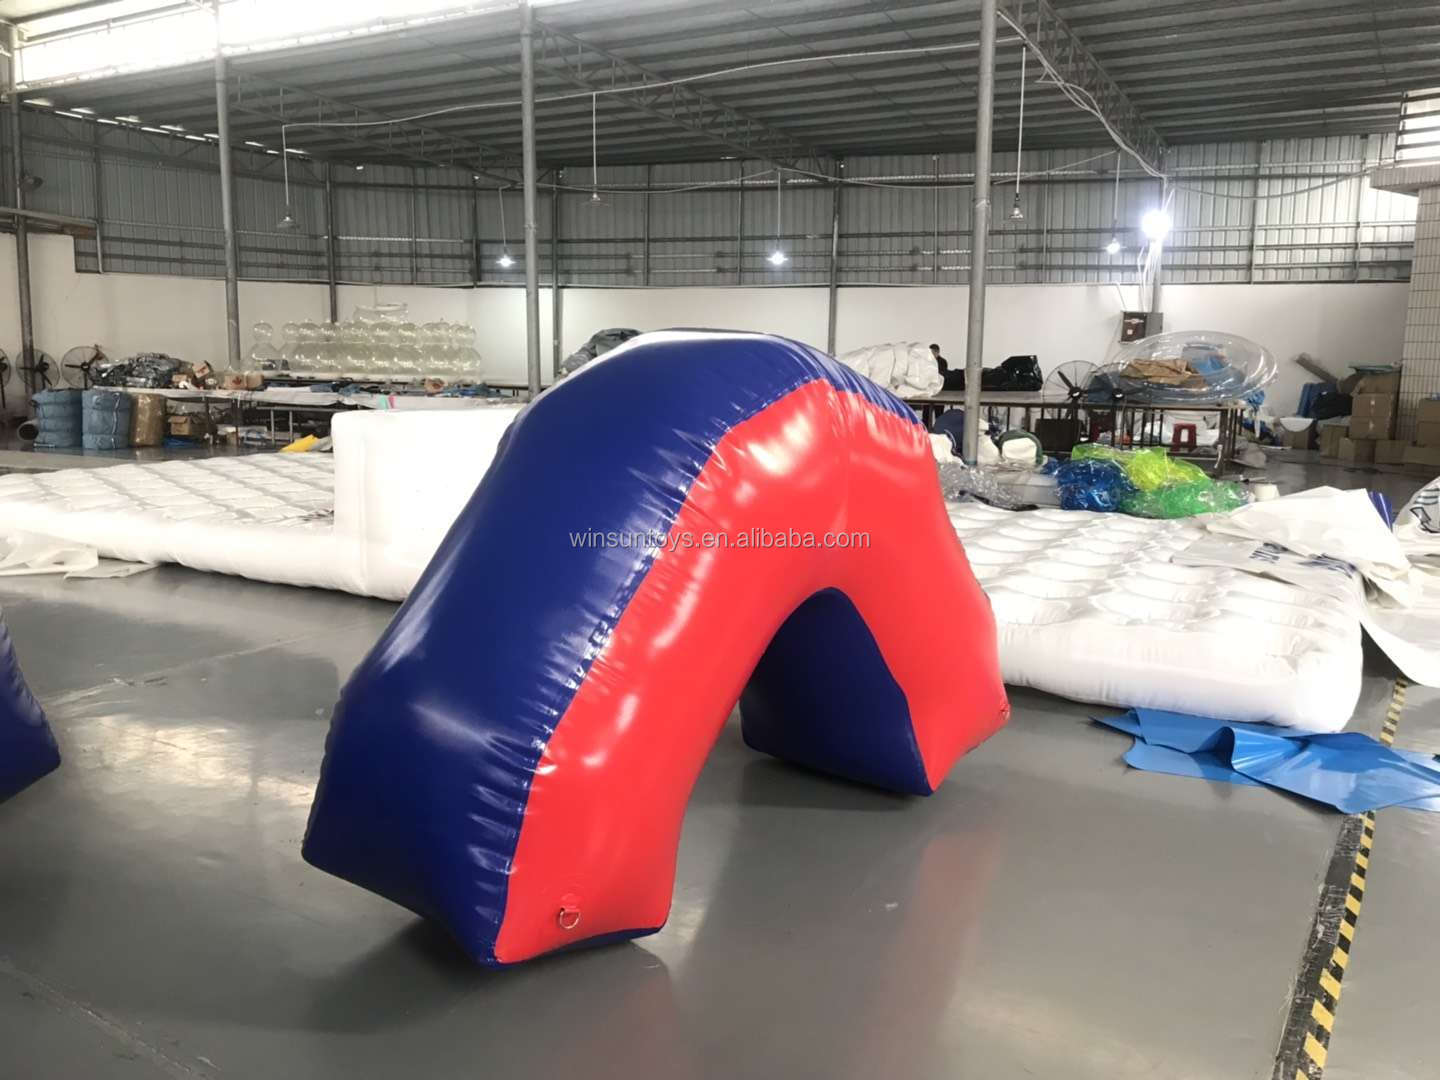 CS laser inflatable water floating buoys,,Laser gun inflatable paintball fields,inflatable paintball area